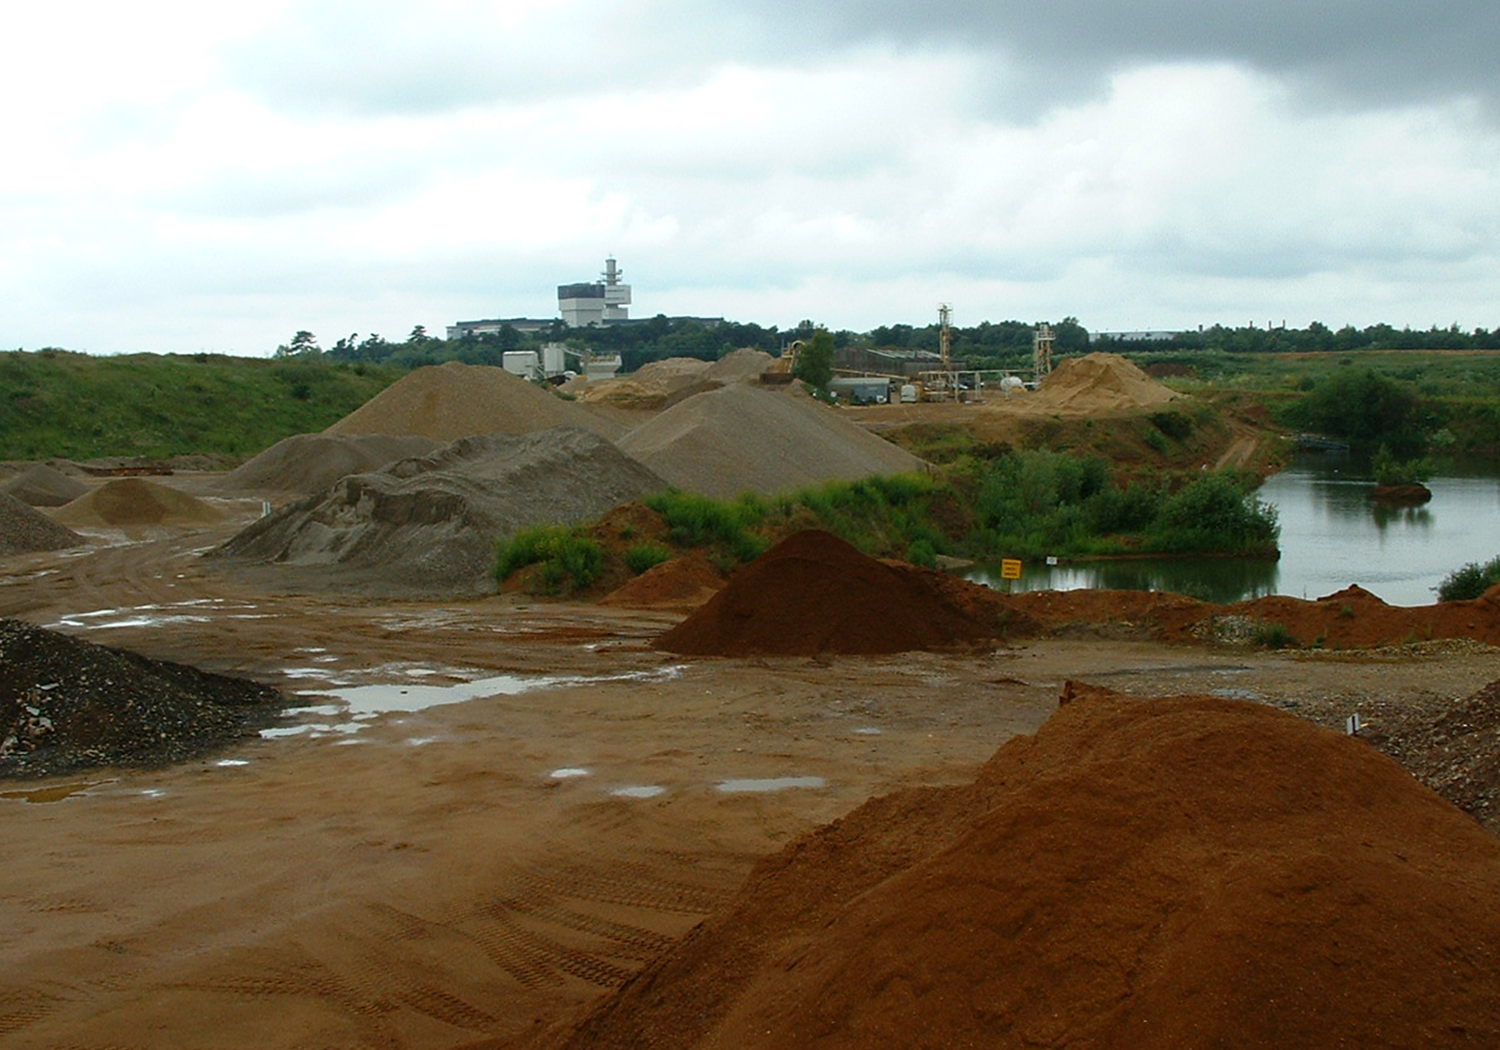 Projects-MineralsWaste-Walringfield-SnadMounds-1500x1050